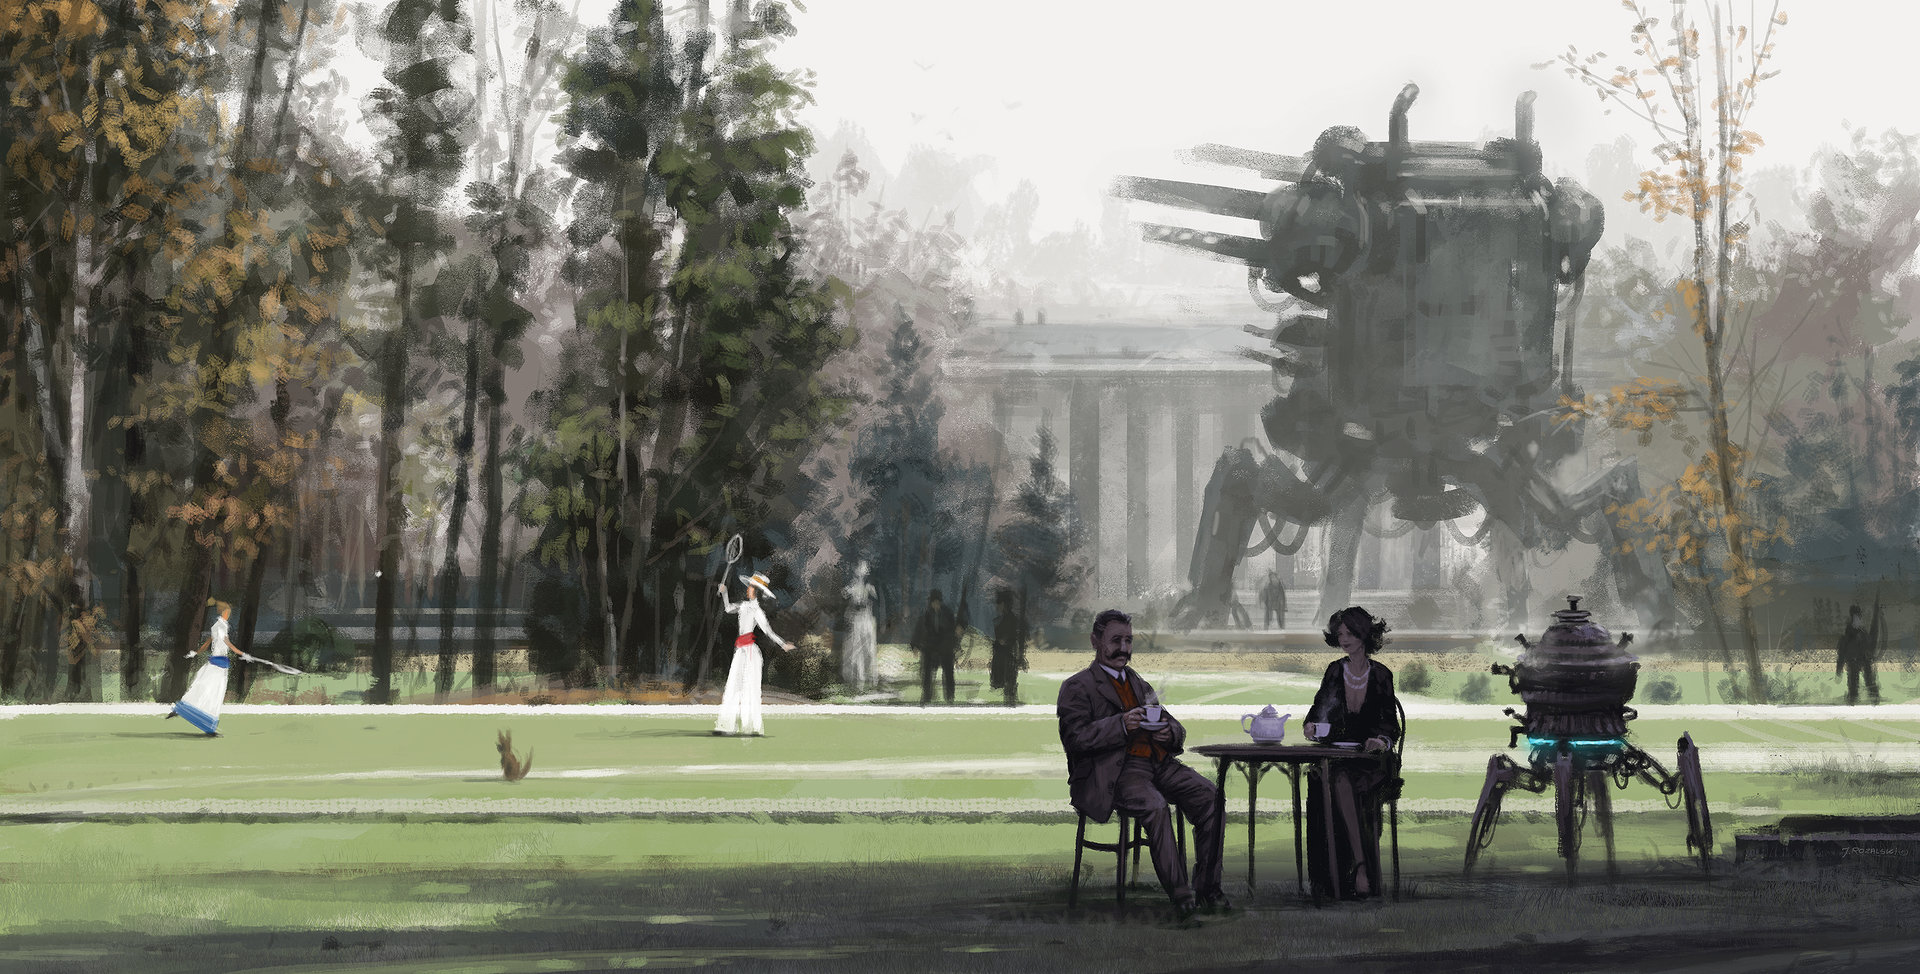 Jakub rozalski despised warmongers